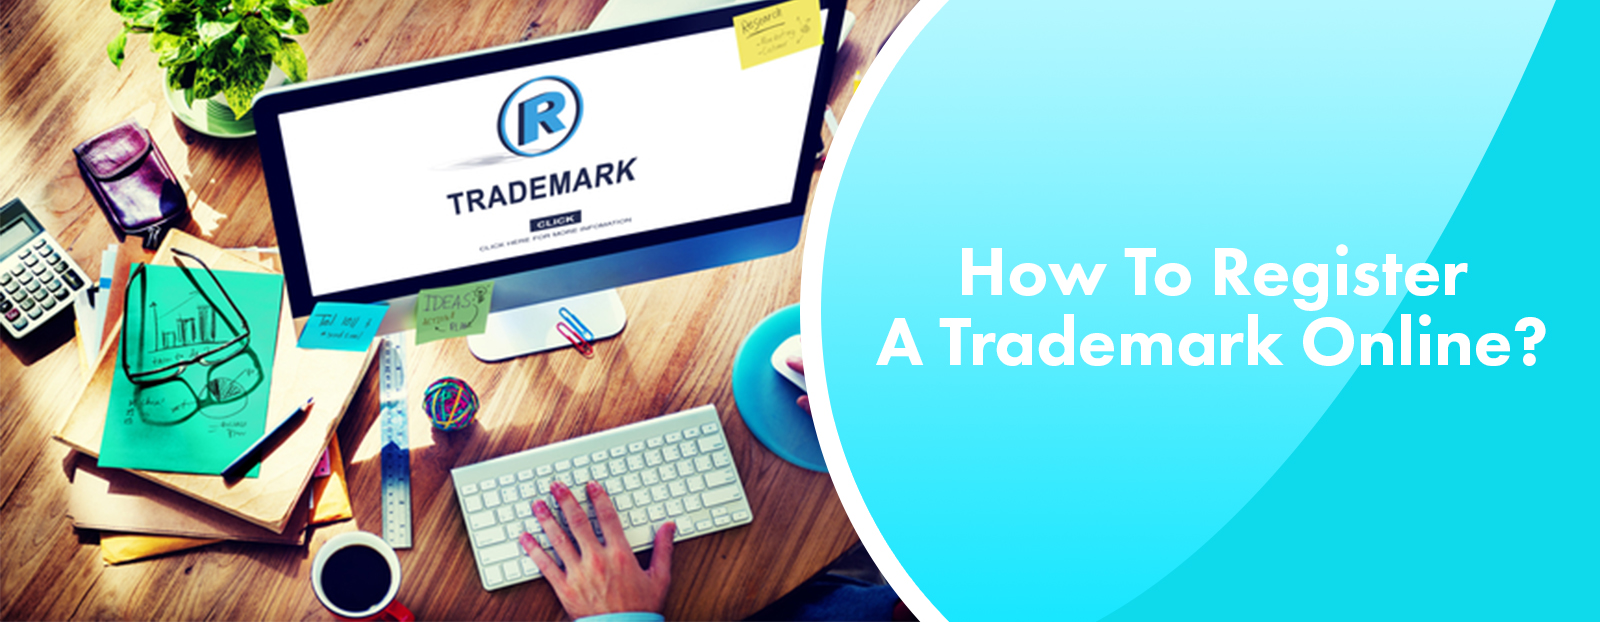 How To Register A Trademark Online?